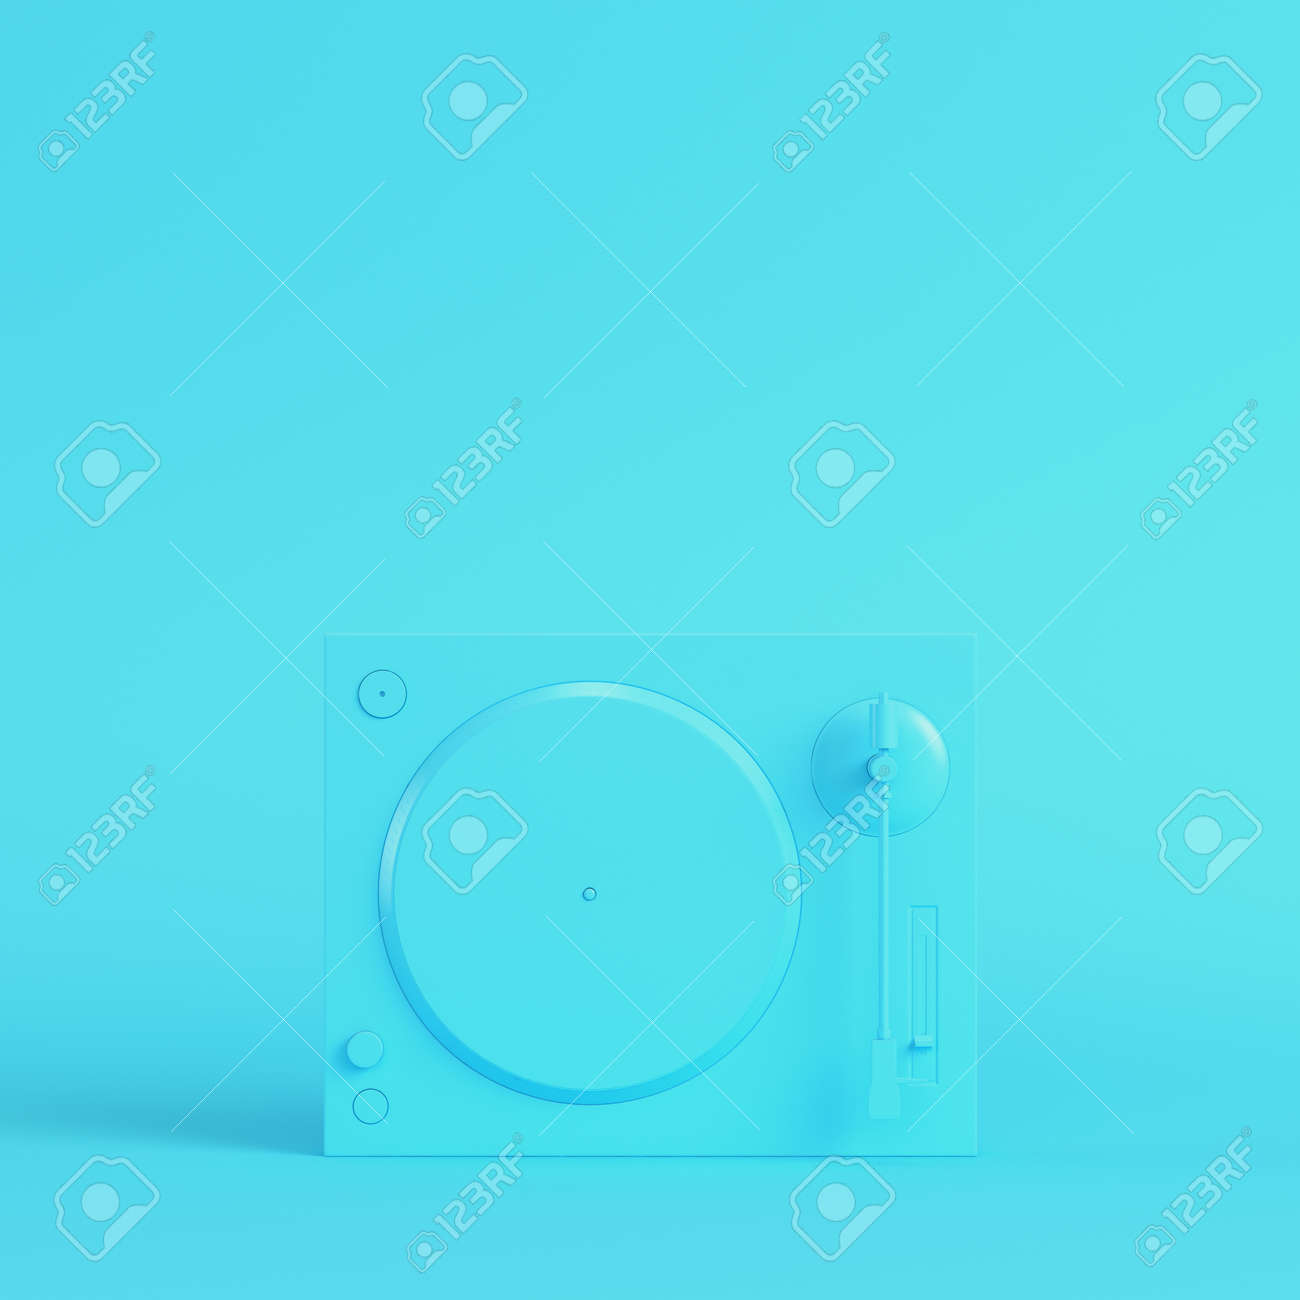 Yellow turntable on bright blue background in pastel colors. Minimalism concept. 3d render - 170609753